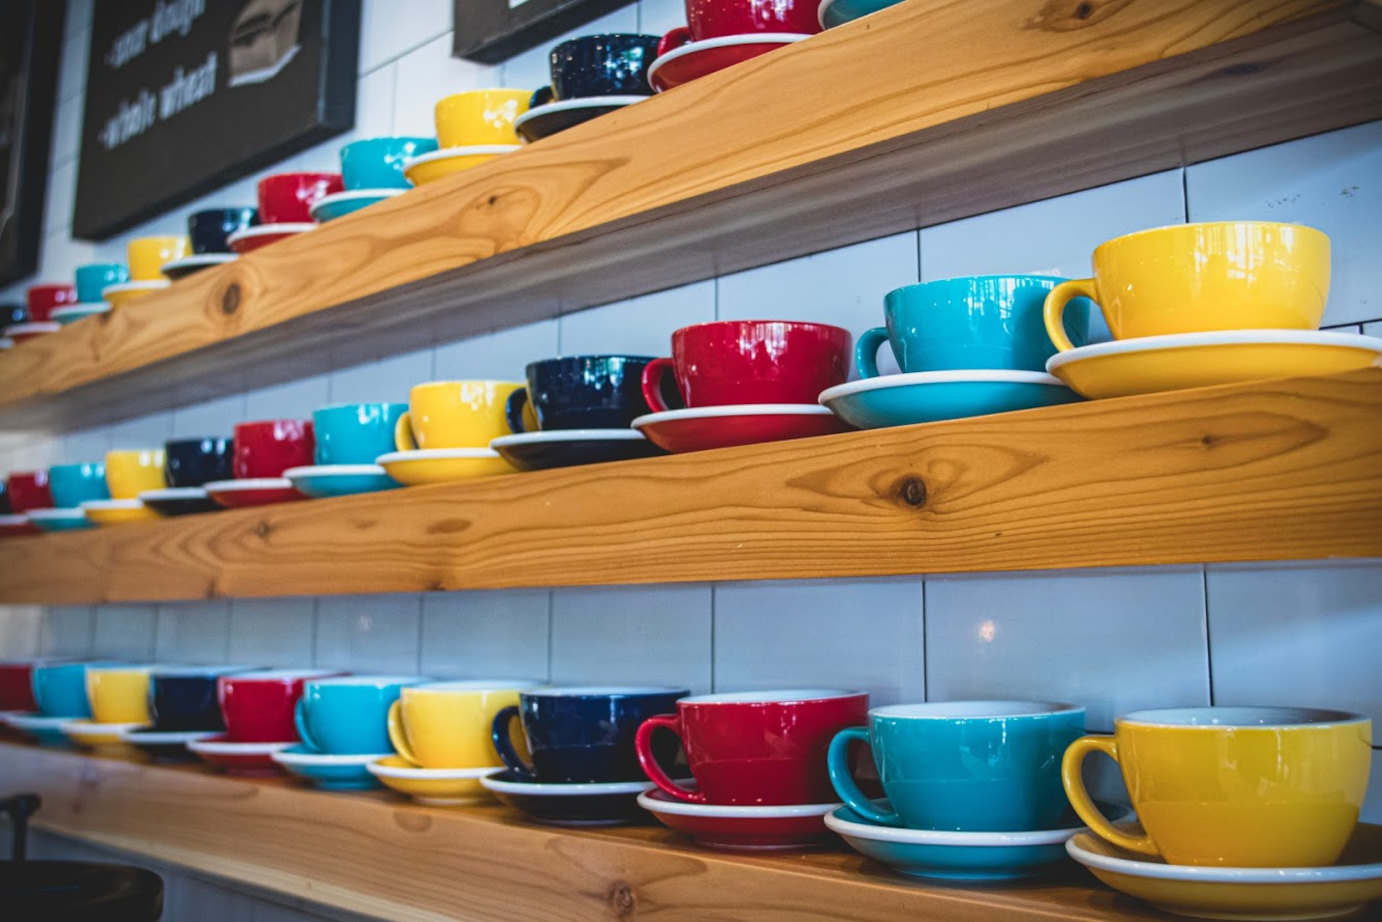 Coffe cups on shelves